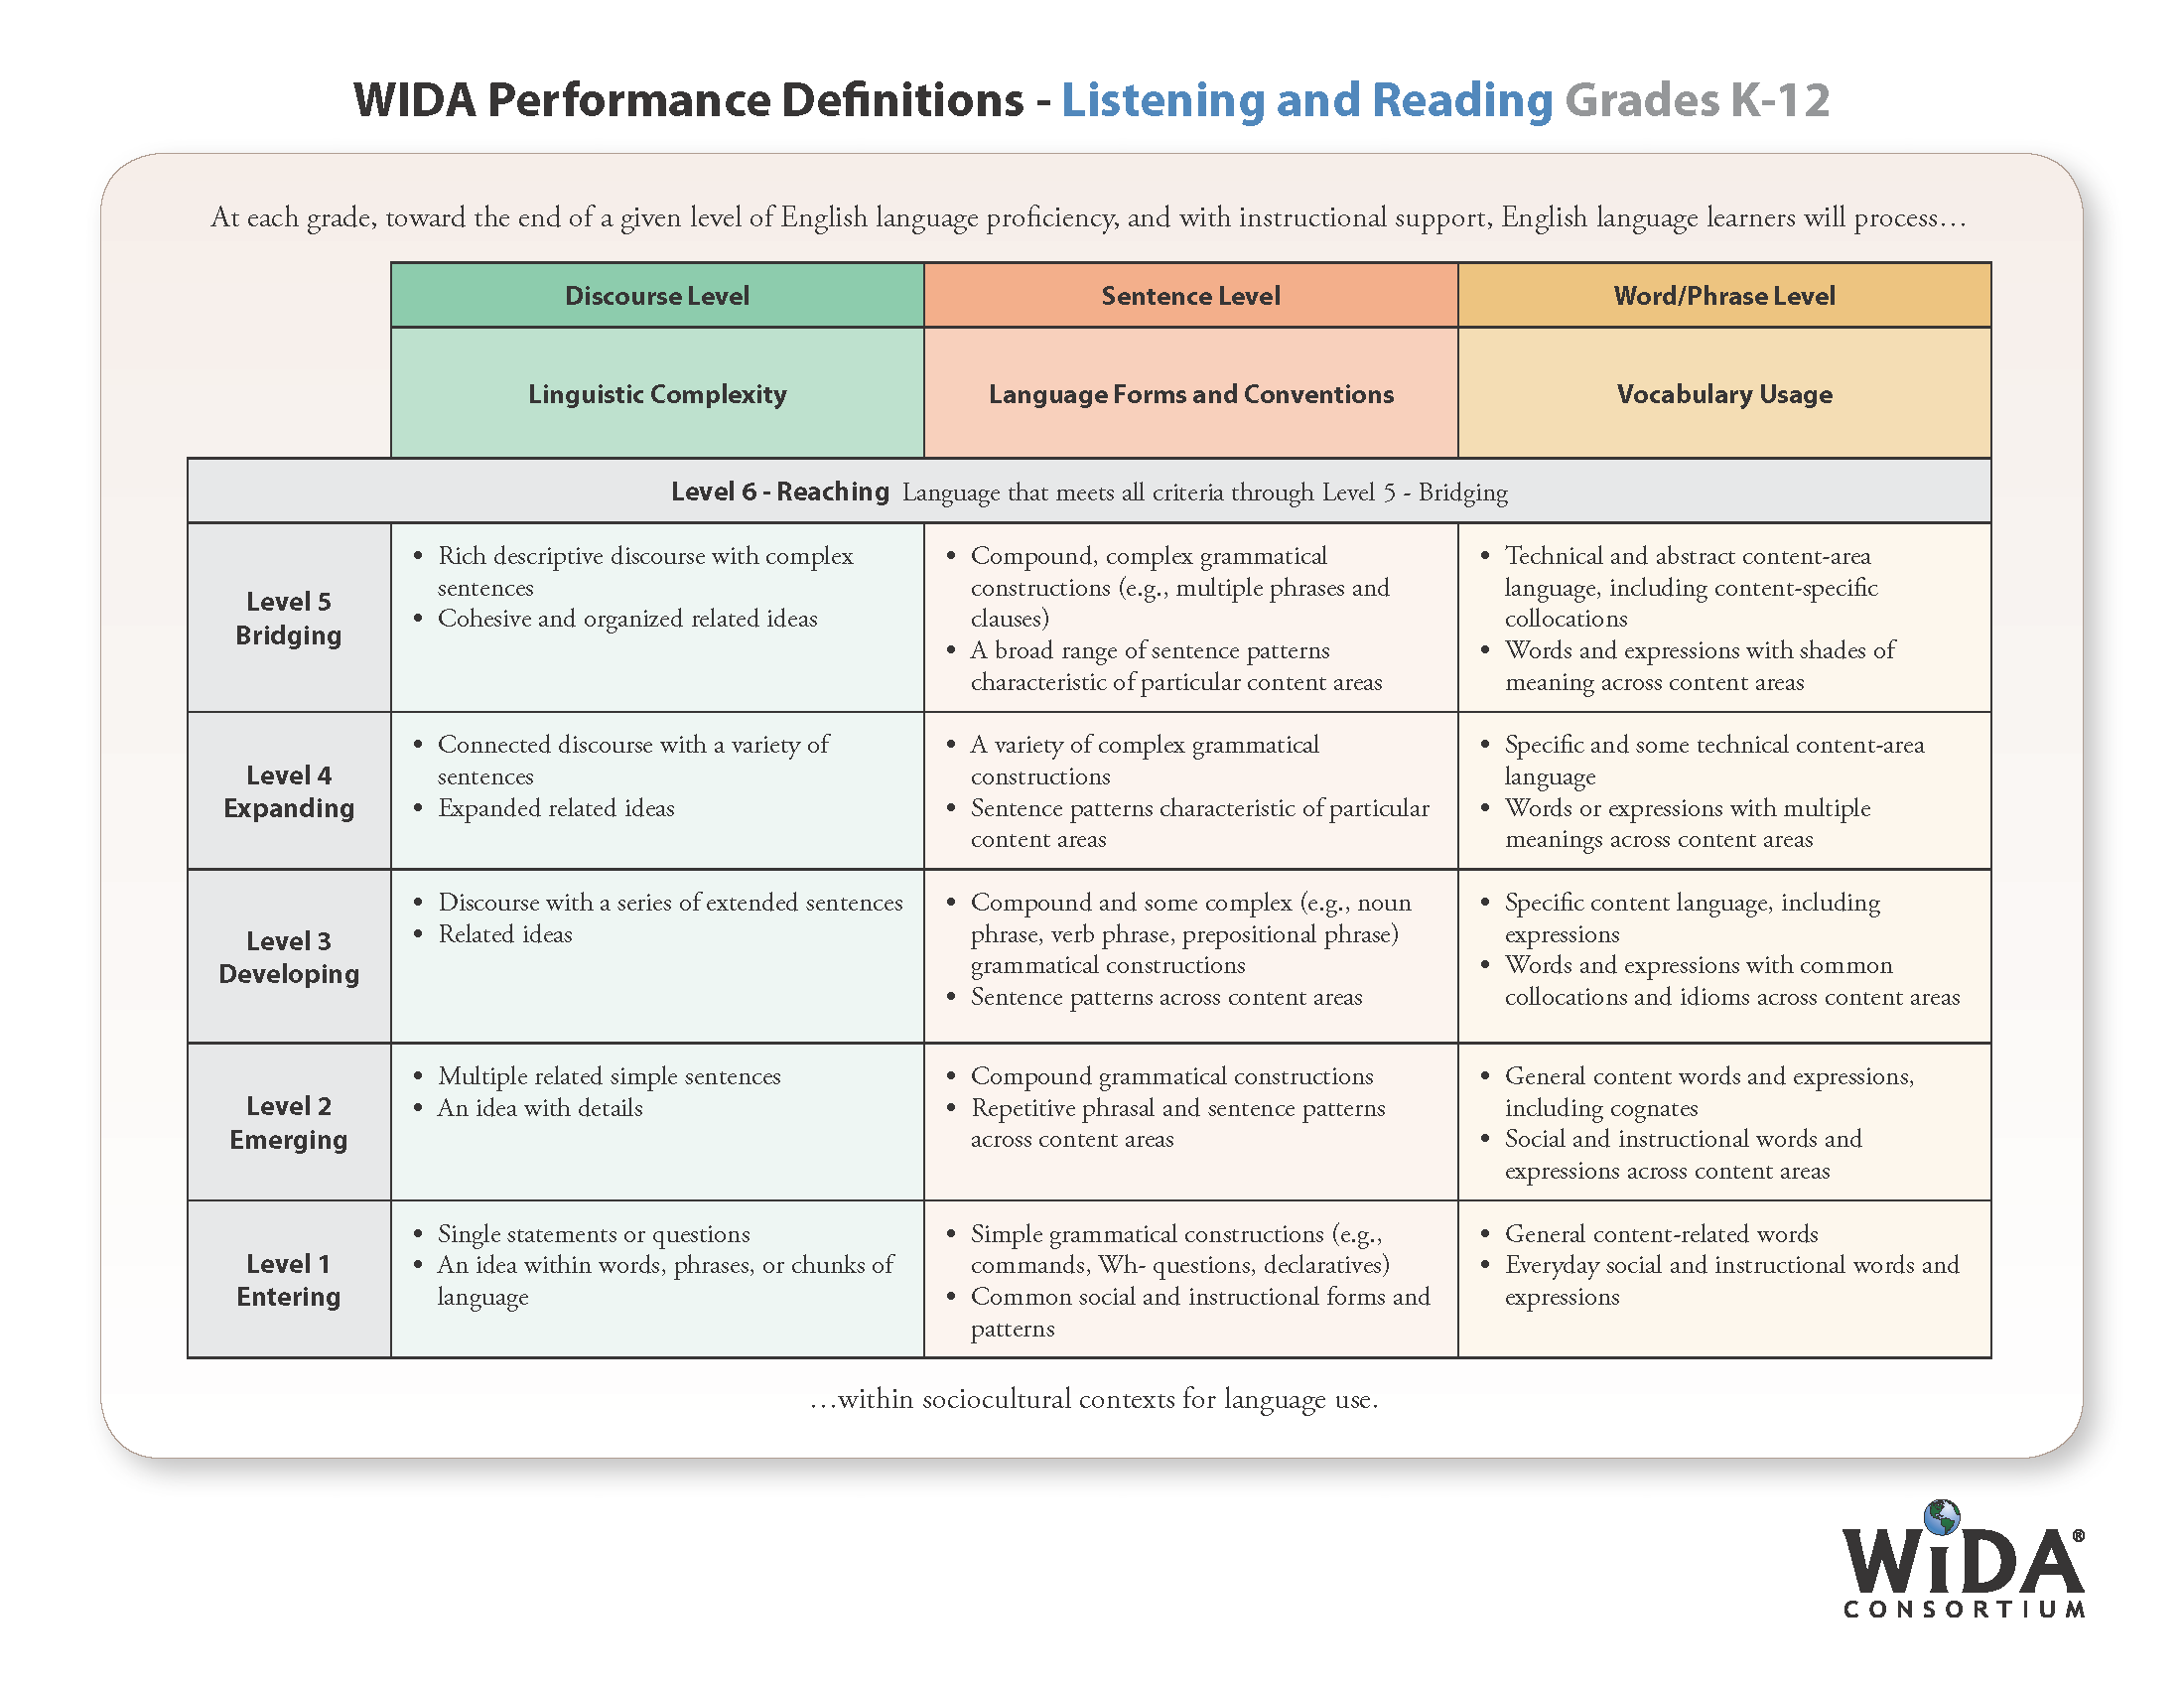 WIDA Performance Definitions - Listening and Reading Grades K-12